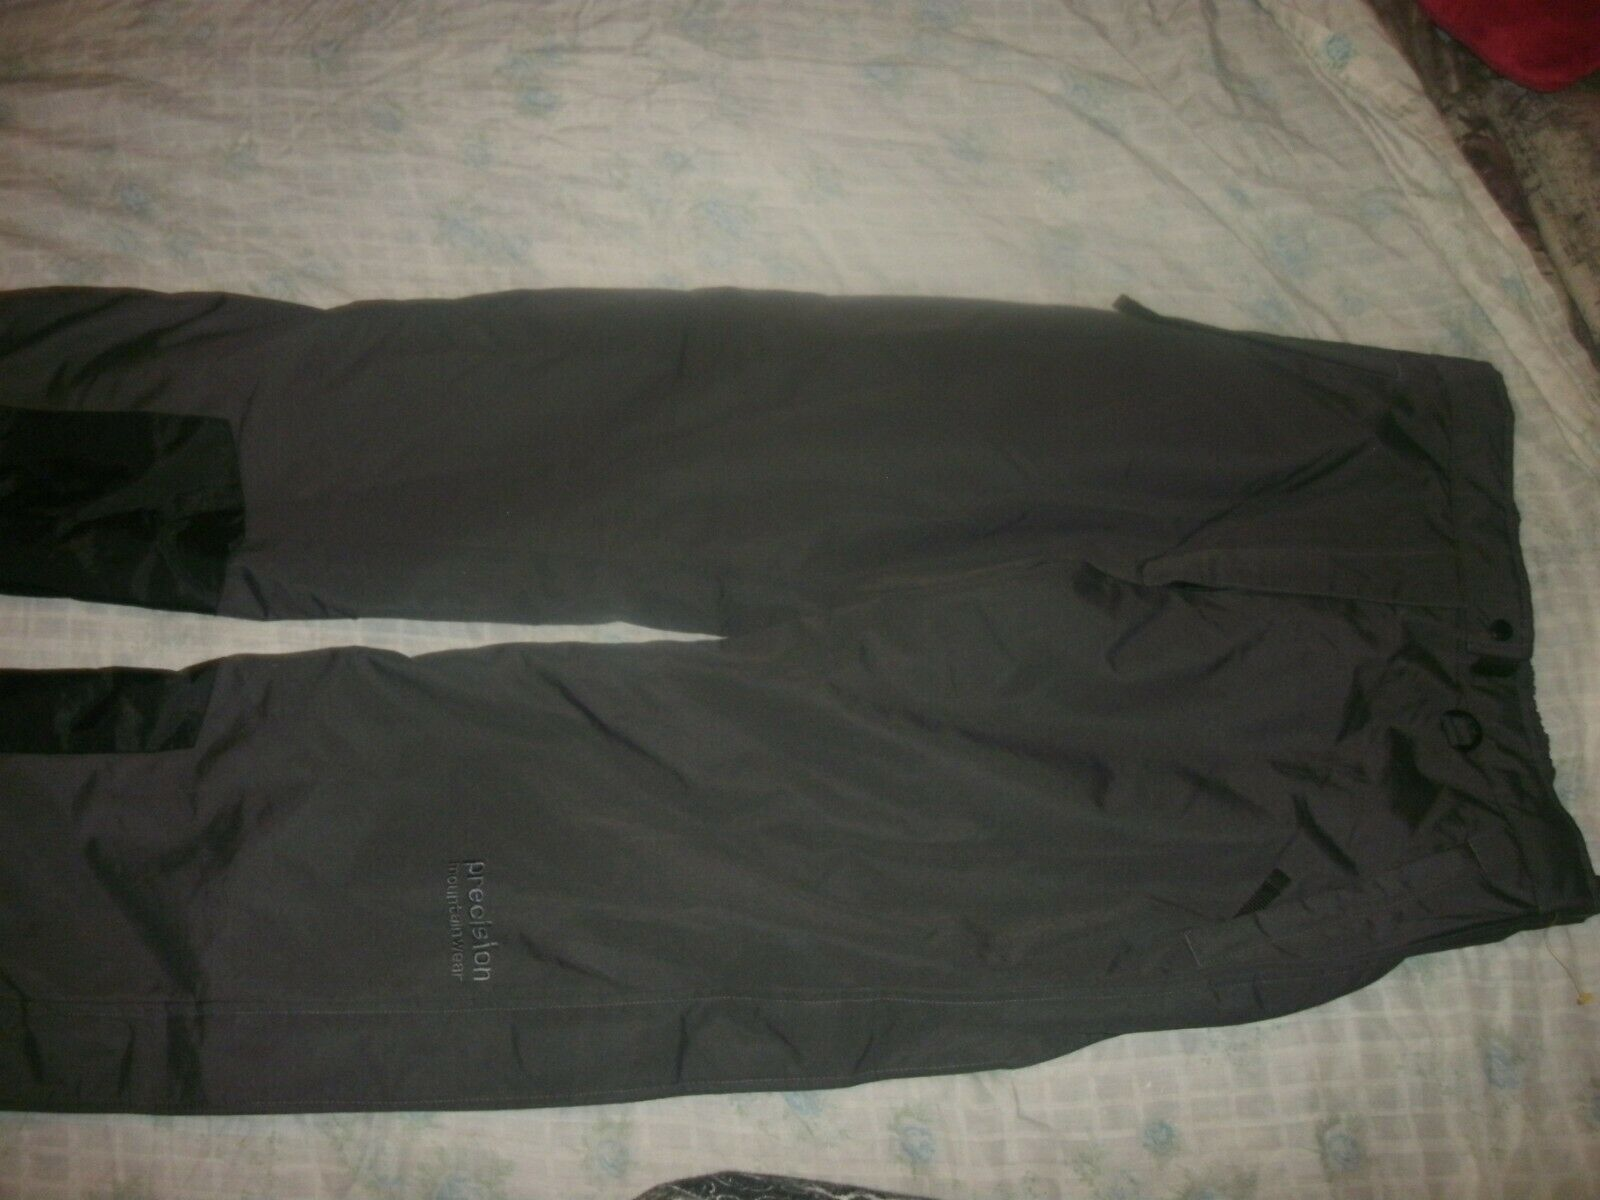 Precision Mountainwear Womans Snow Pants Size Large Dark G   Waterproof (B27)  sale online discount